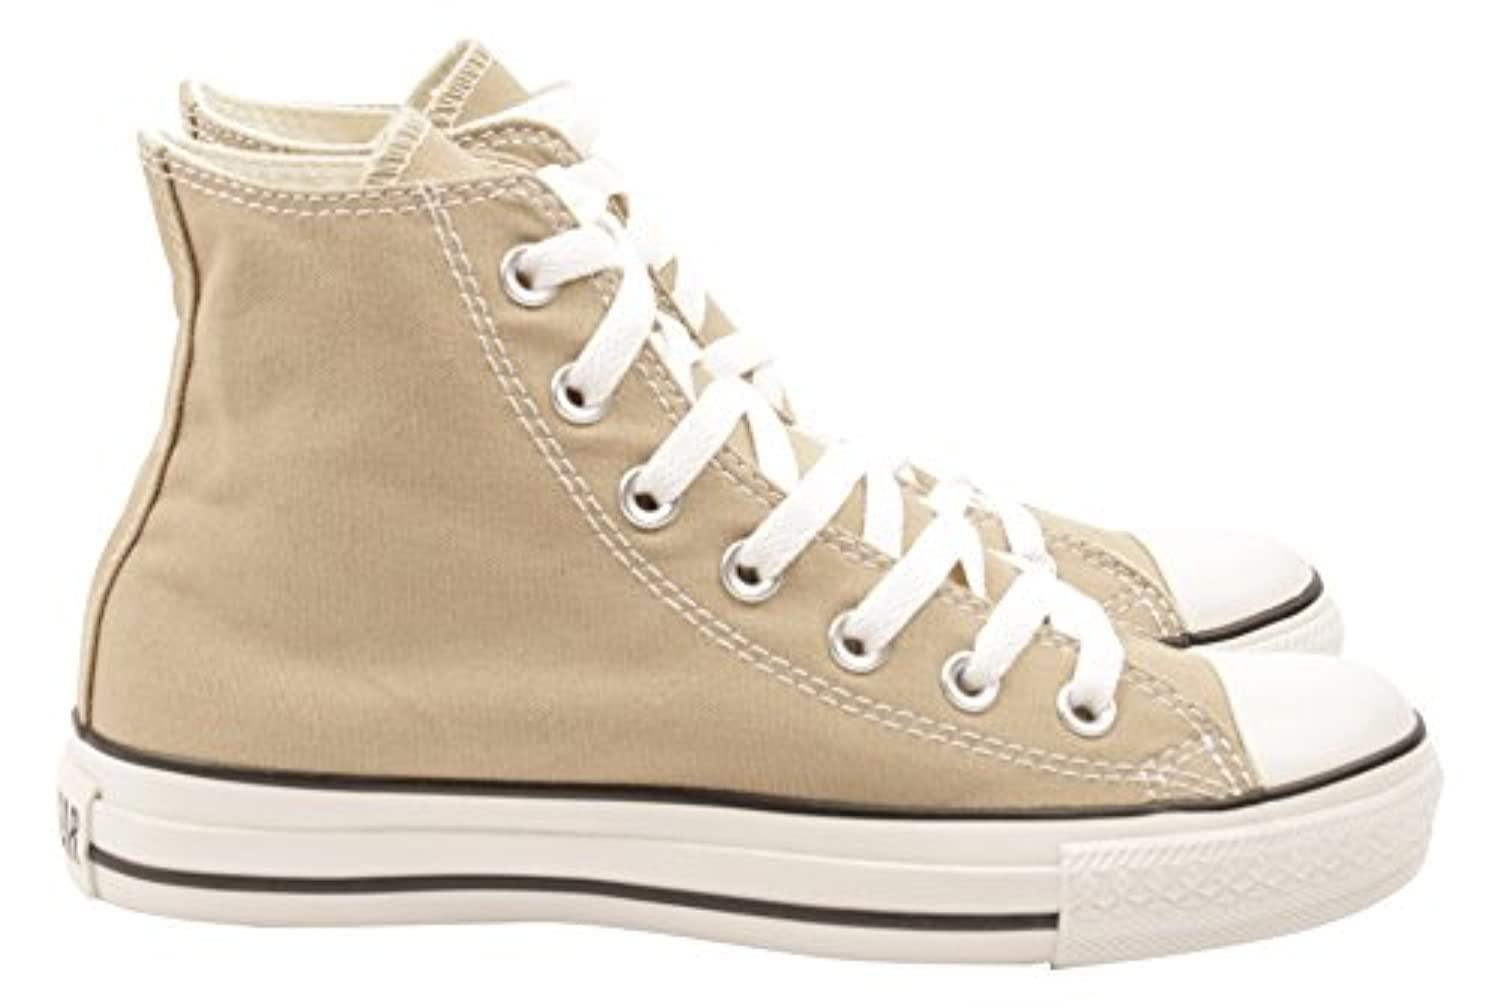 Converse Unisex Adults' Chuck Taylor All Star Season Hi Low-Top Sneakers Beige Size: 3.5 UK